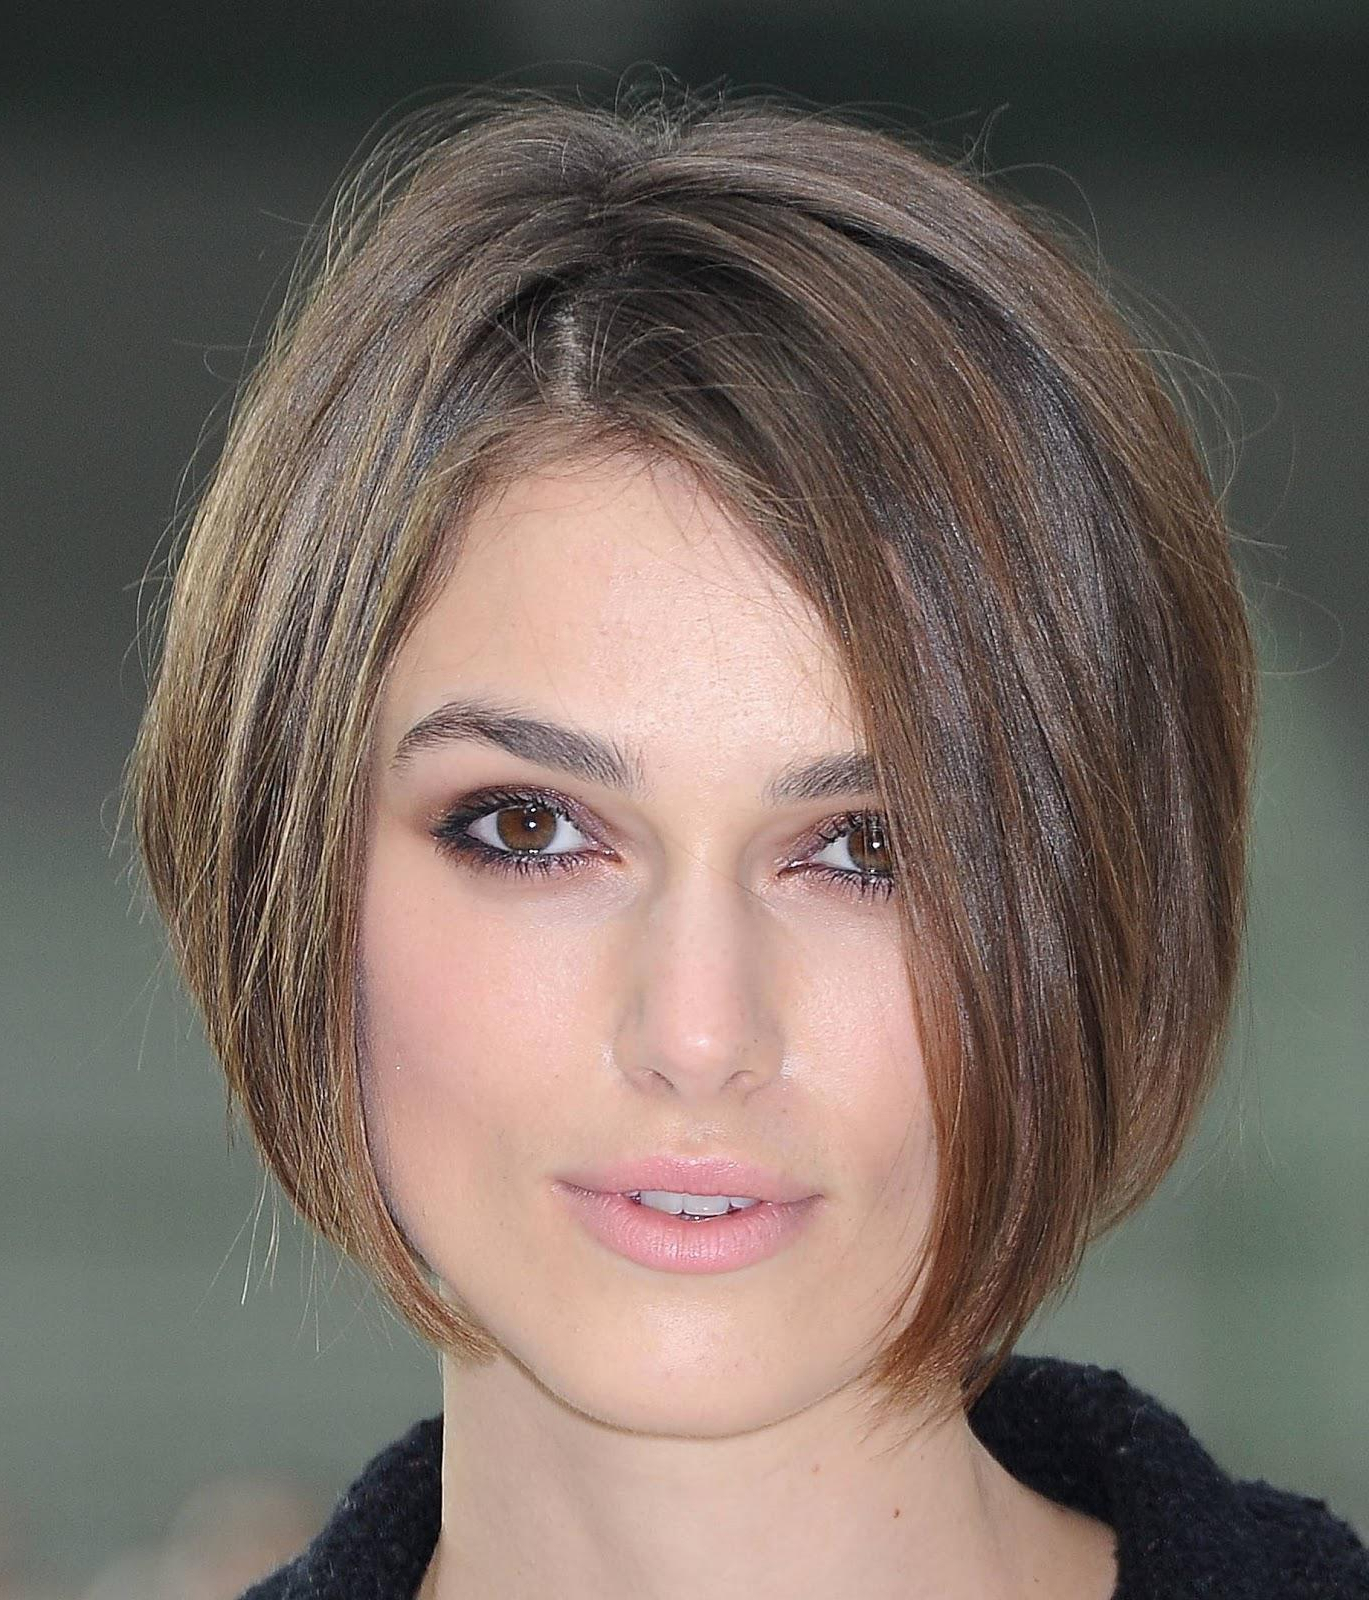 2020 Latest Cropped Hairstyles For Round Faces